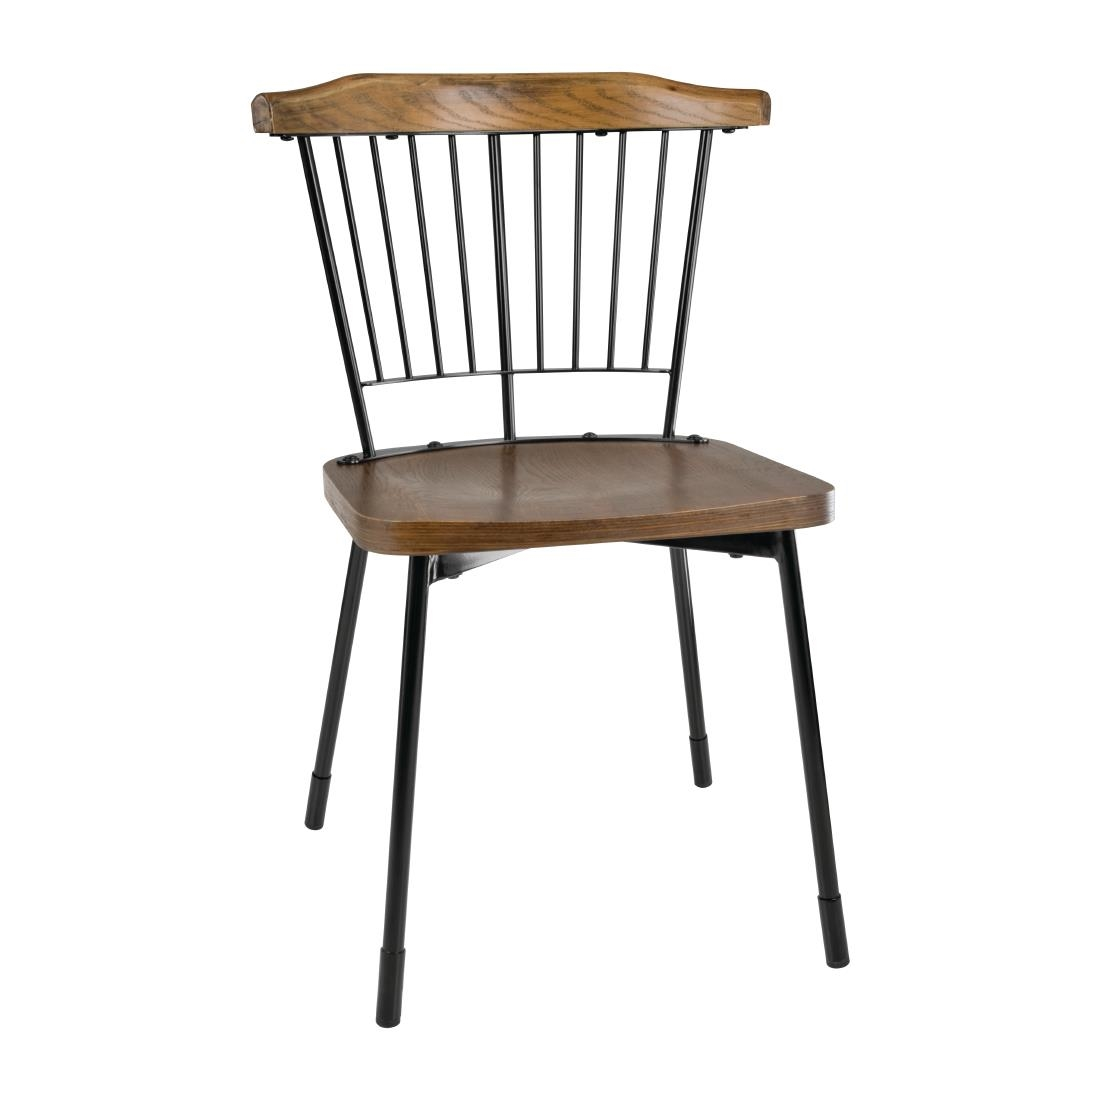 Image of Bolero Scandi Side Chairs Black (Pack of 2) Pack of 2